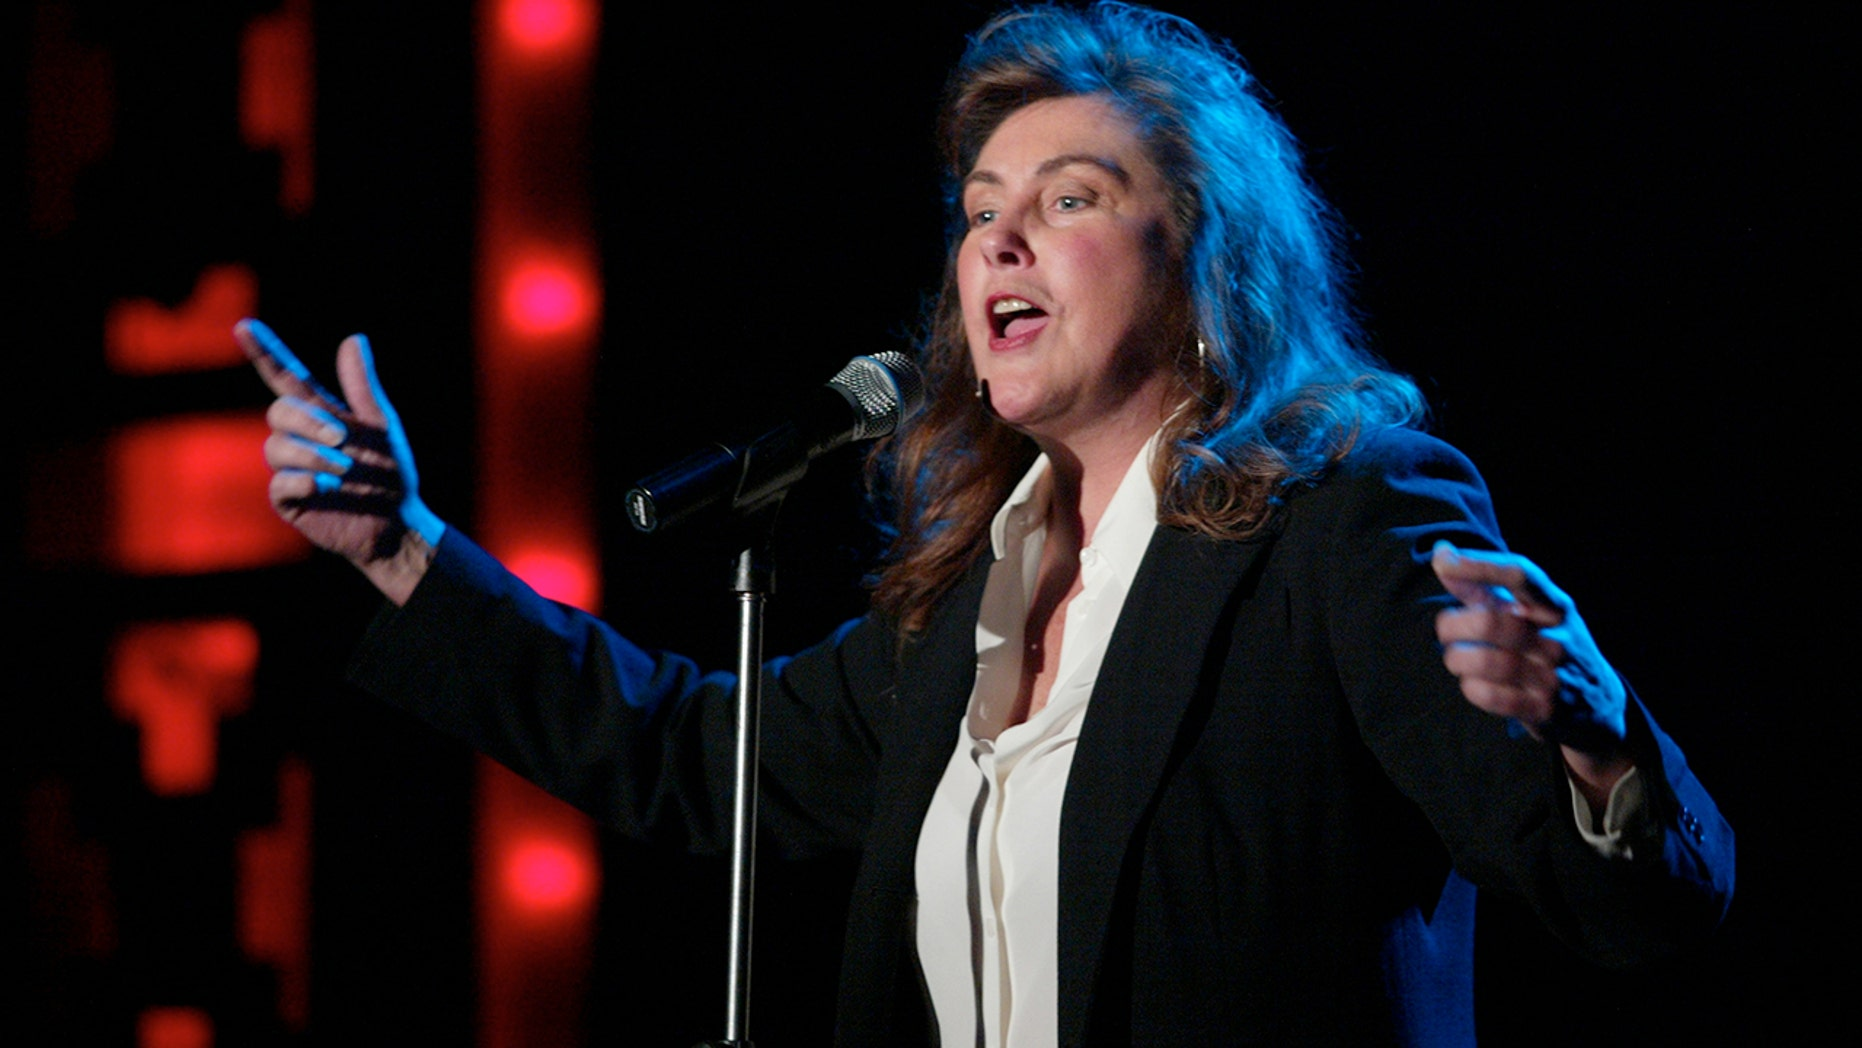 """Laura Branigan performs at Webster Hall in New York City in 2002. Branigan died in 2004 but her 1982 hit """"Gloria"""" has found new life as a rally song for the St. Louis Blues hockey club. (Getty Images)"""